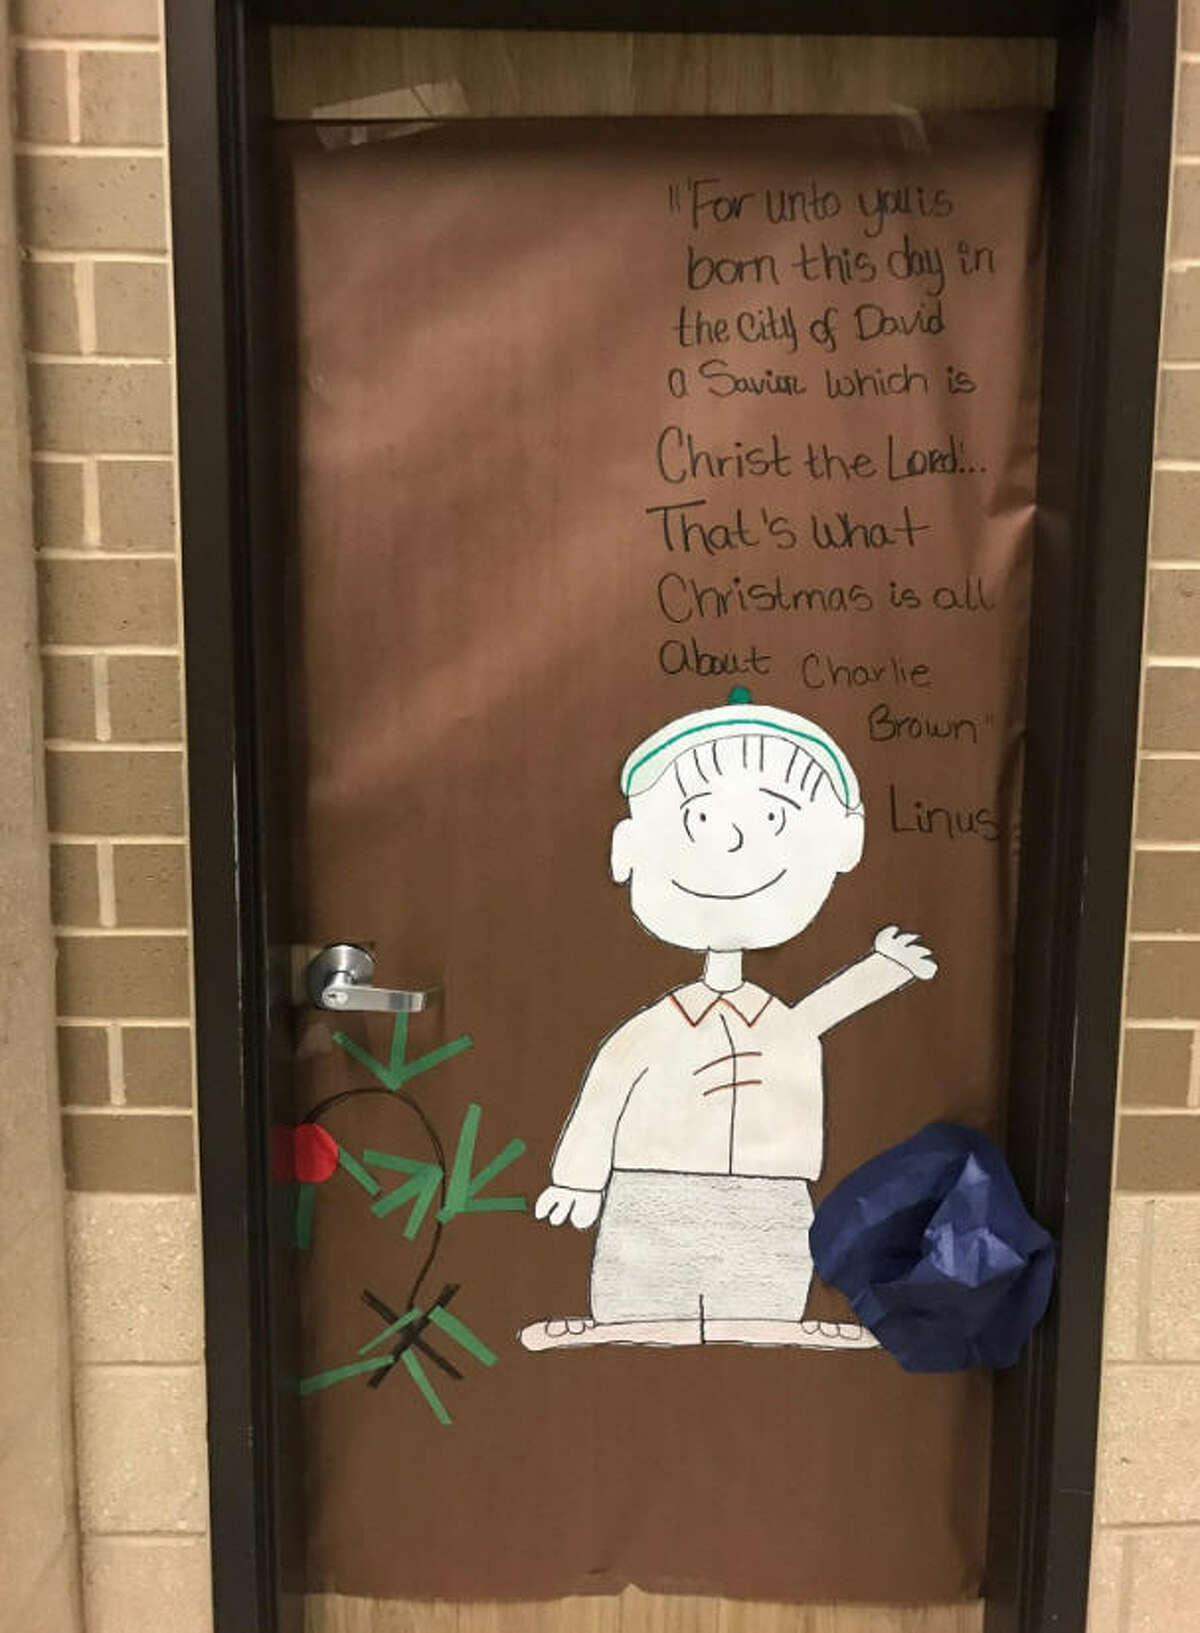 The door display A door display at Patterson Middle School in Killeen set off a firestorm among the school and parents. At issue is the quote from Linus that school officials found promoting religion. Parents were unhappy with the decision to take down the display. Click through to see more about Charlie Brown and Christmas.